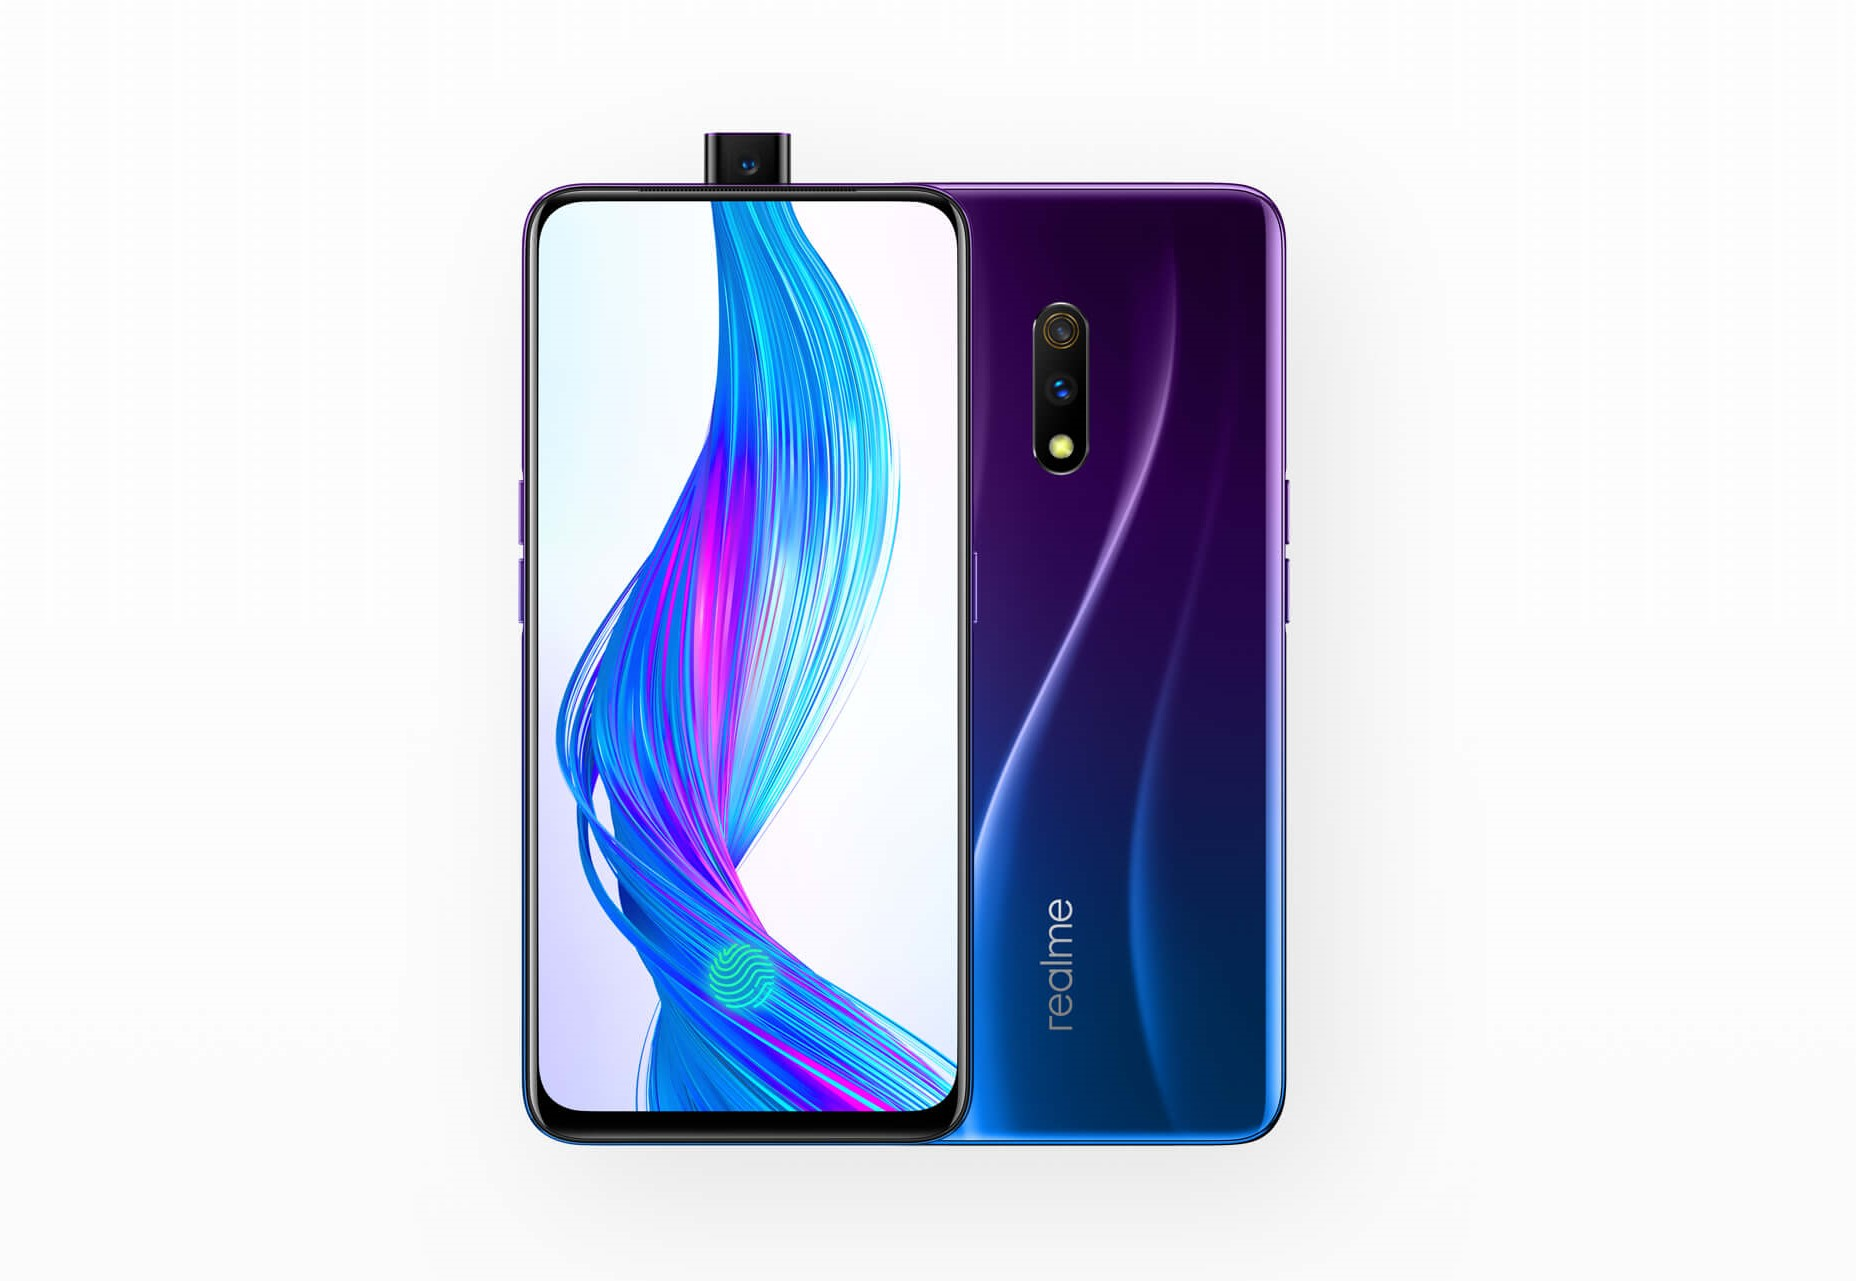 Realme logs sale of Rs 3,500 cr in 9-day festive sale